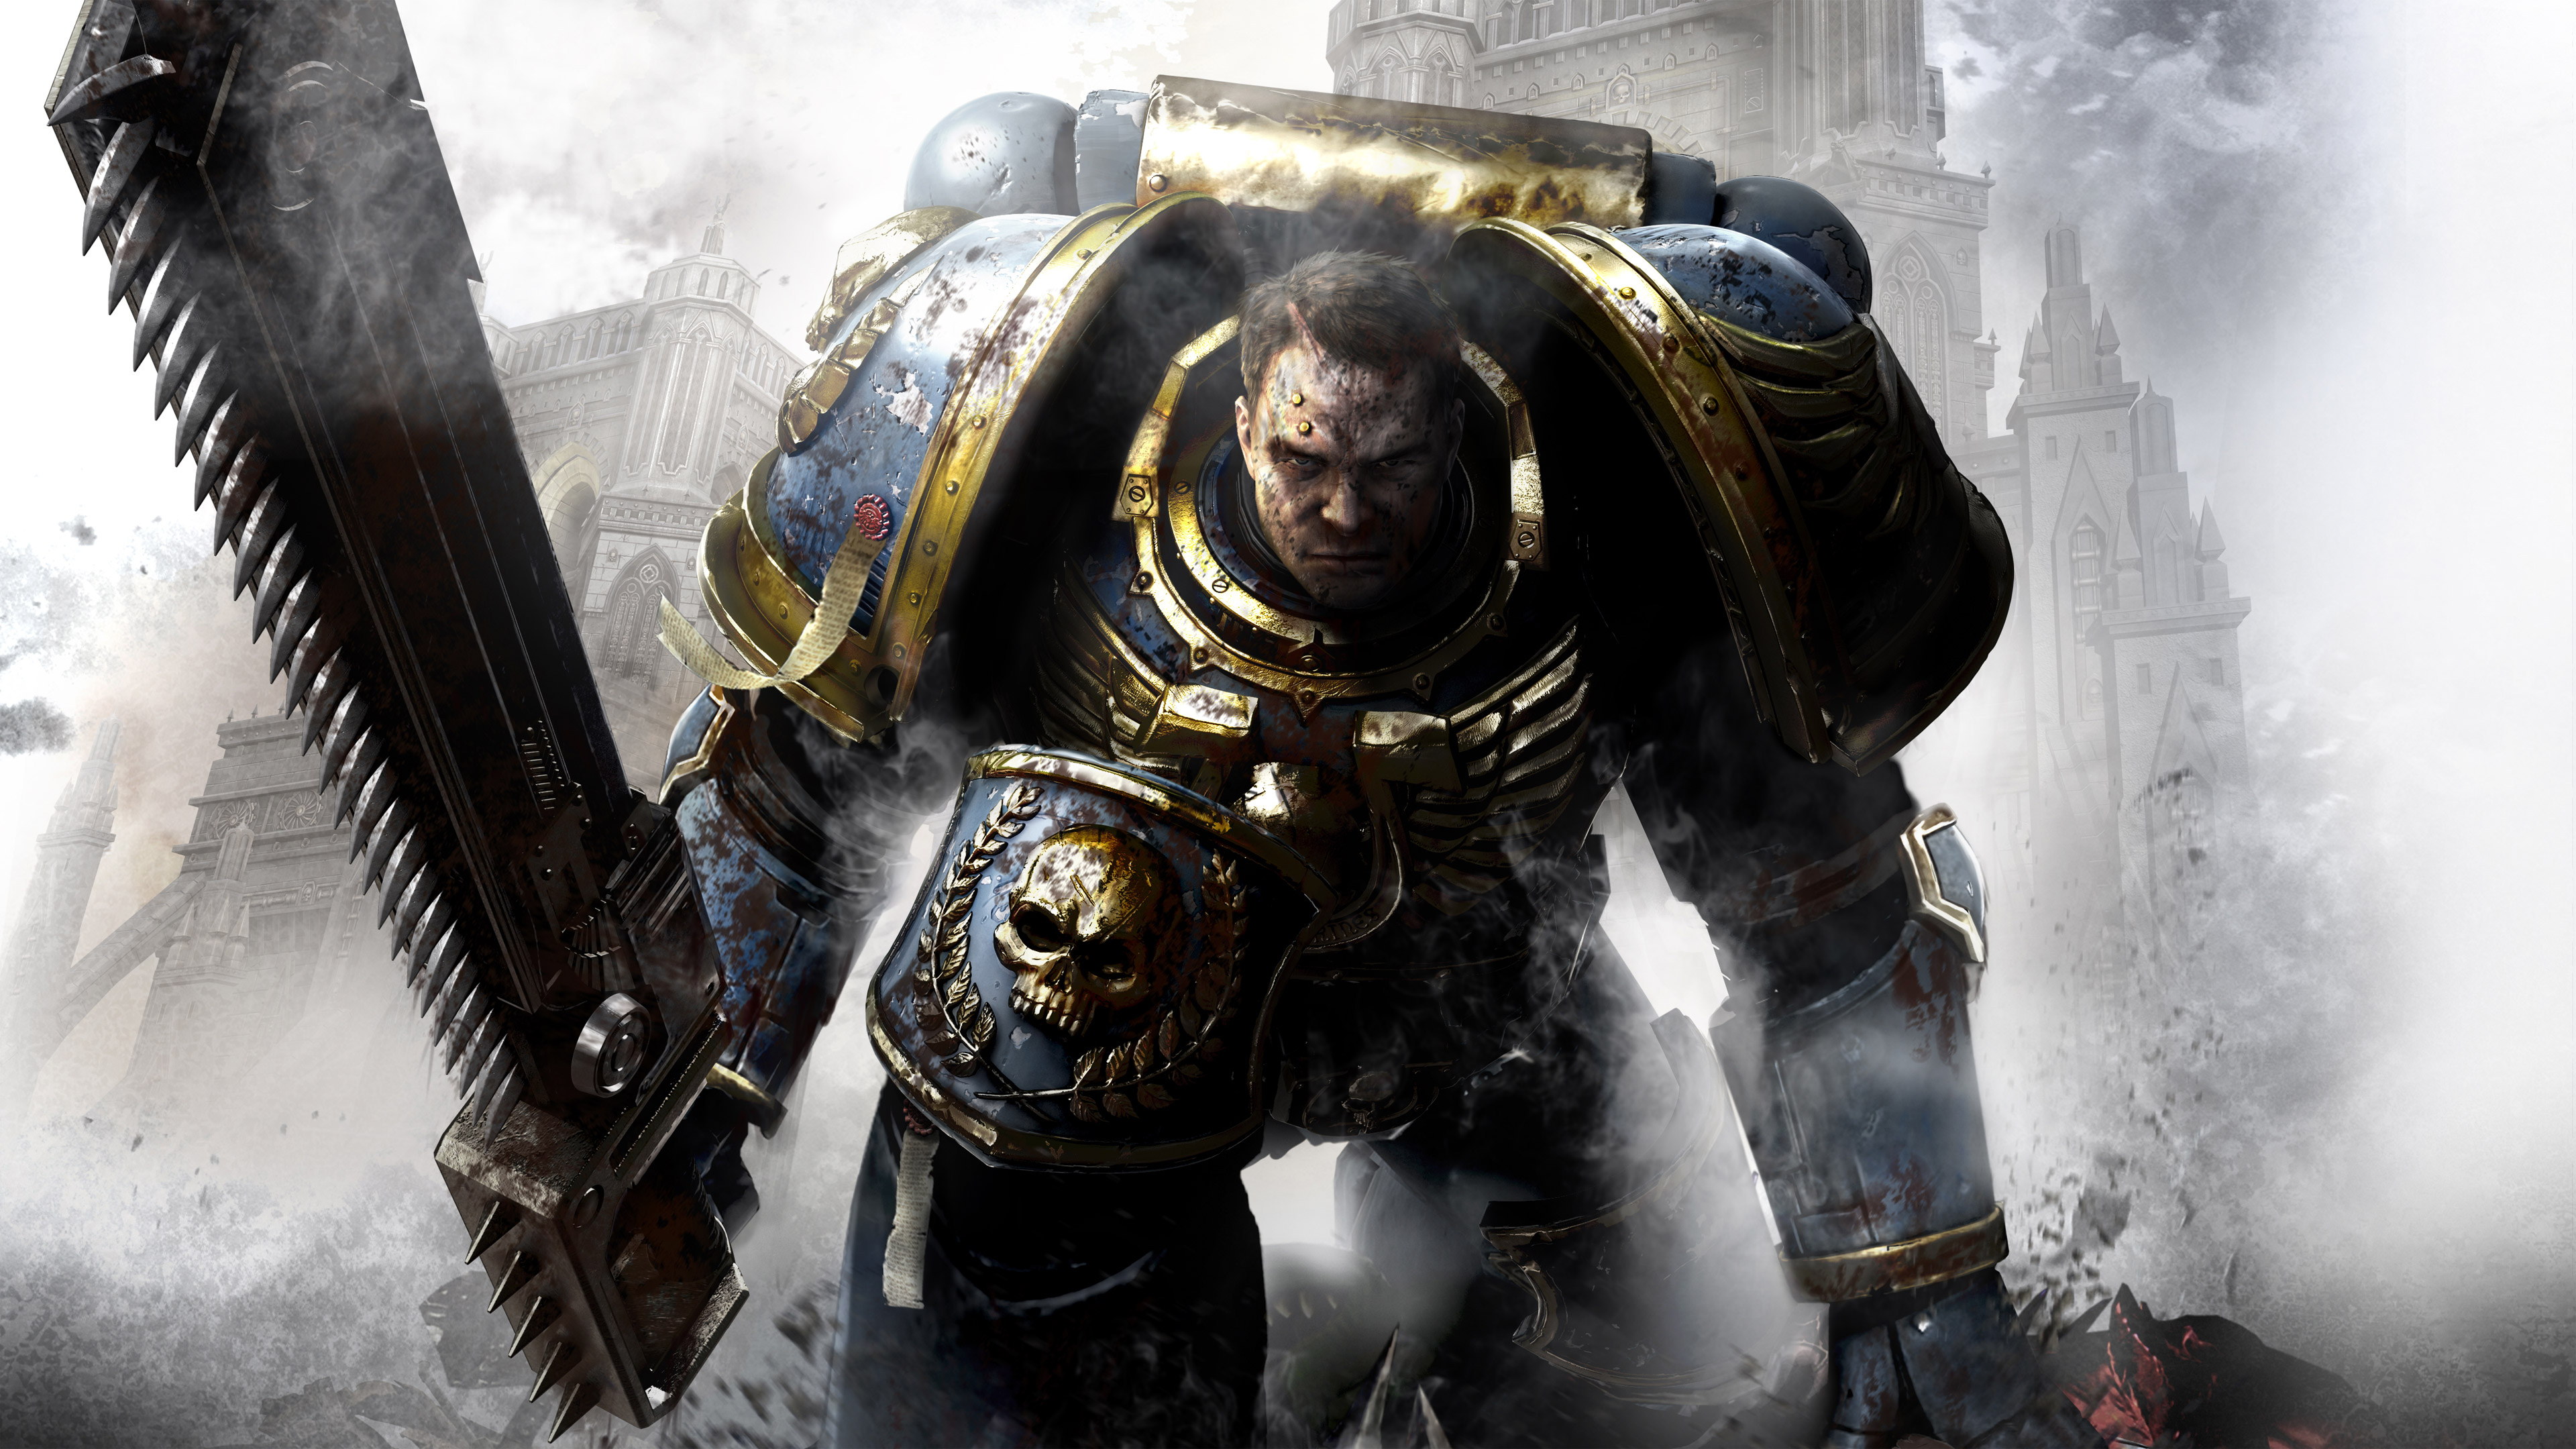 Captain titus warhammer 40000 space marine hd games 4k wallpapers images backgrounds photos - Titus wallpaper ...